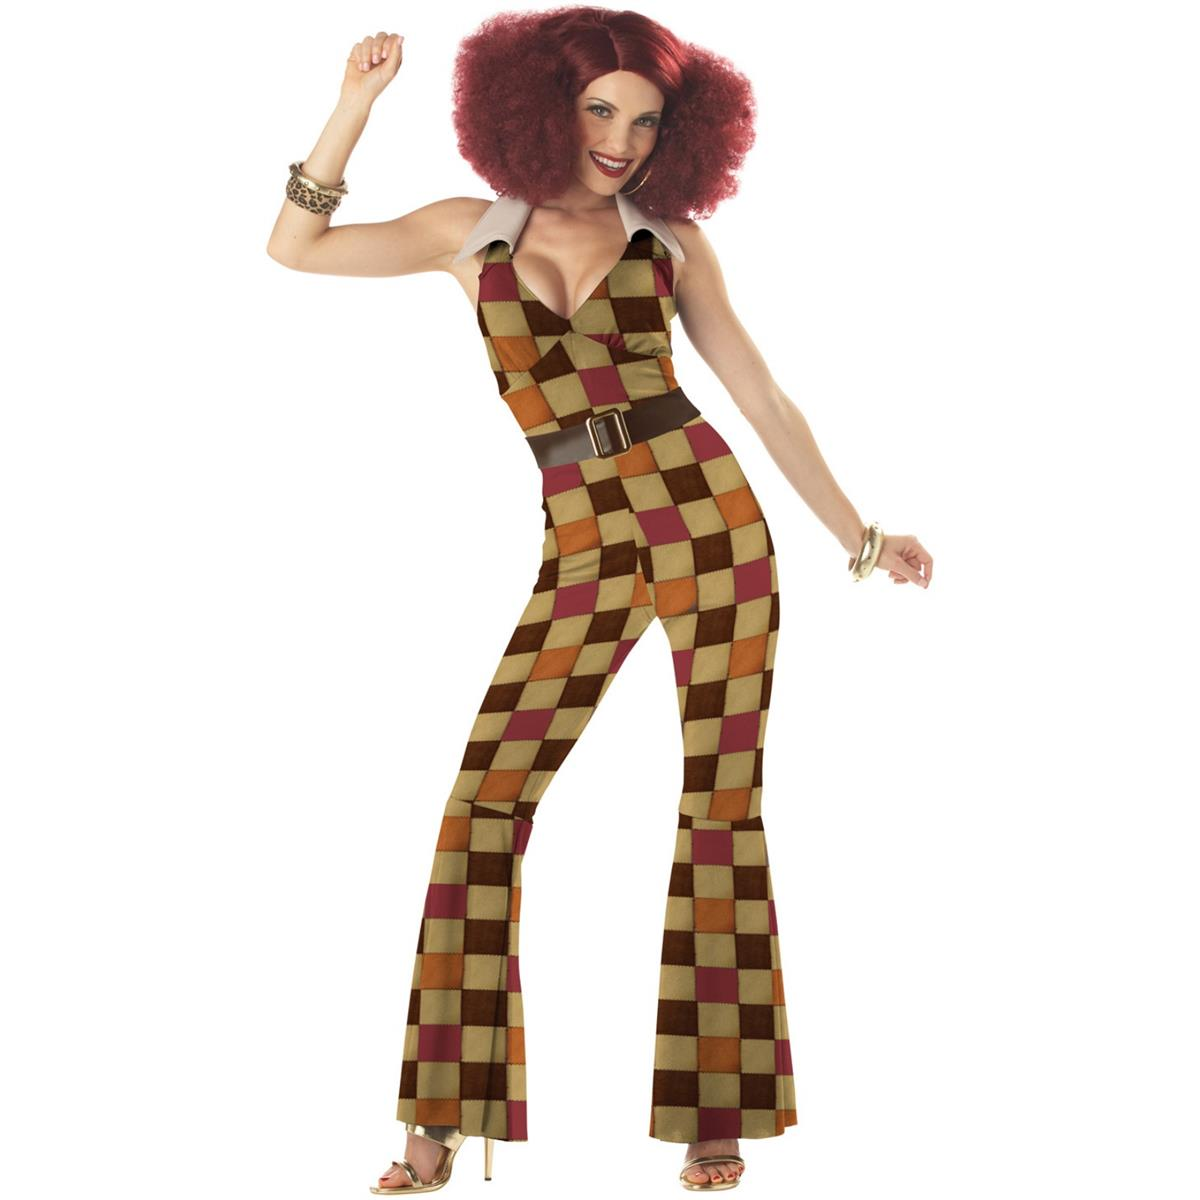 Acomes Costume For Costume Play Clothes 70s 70 S Disco Boogie